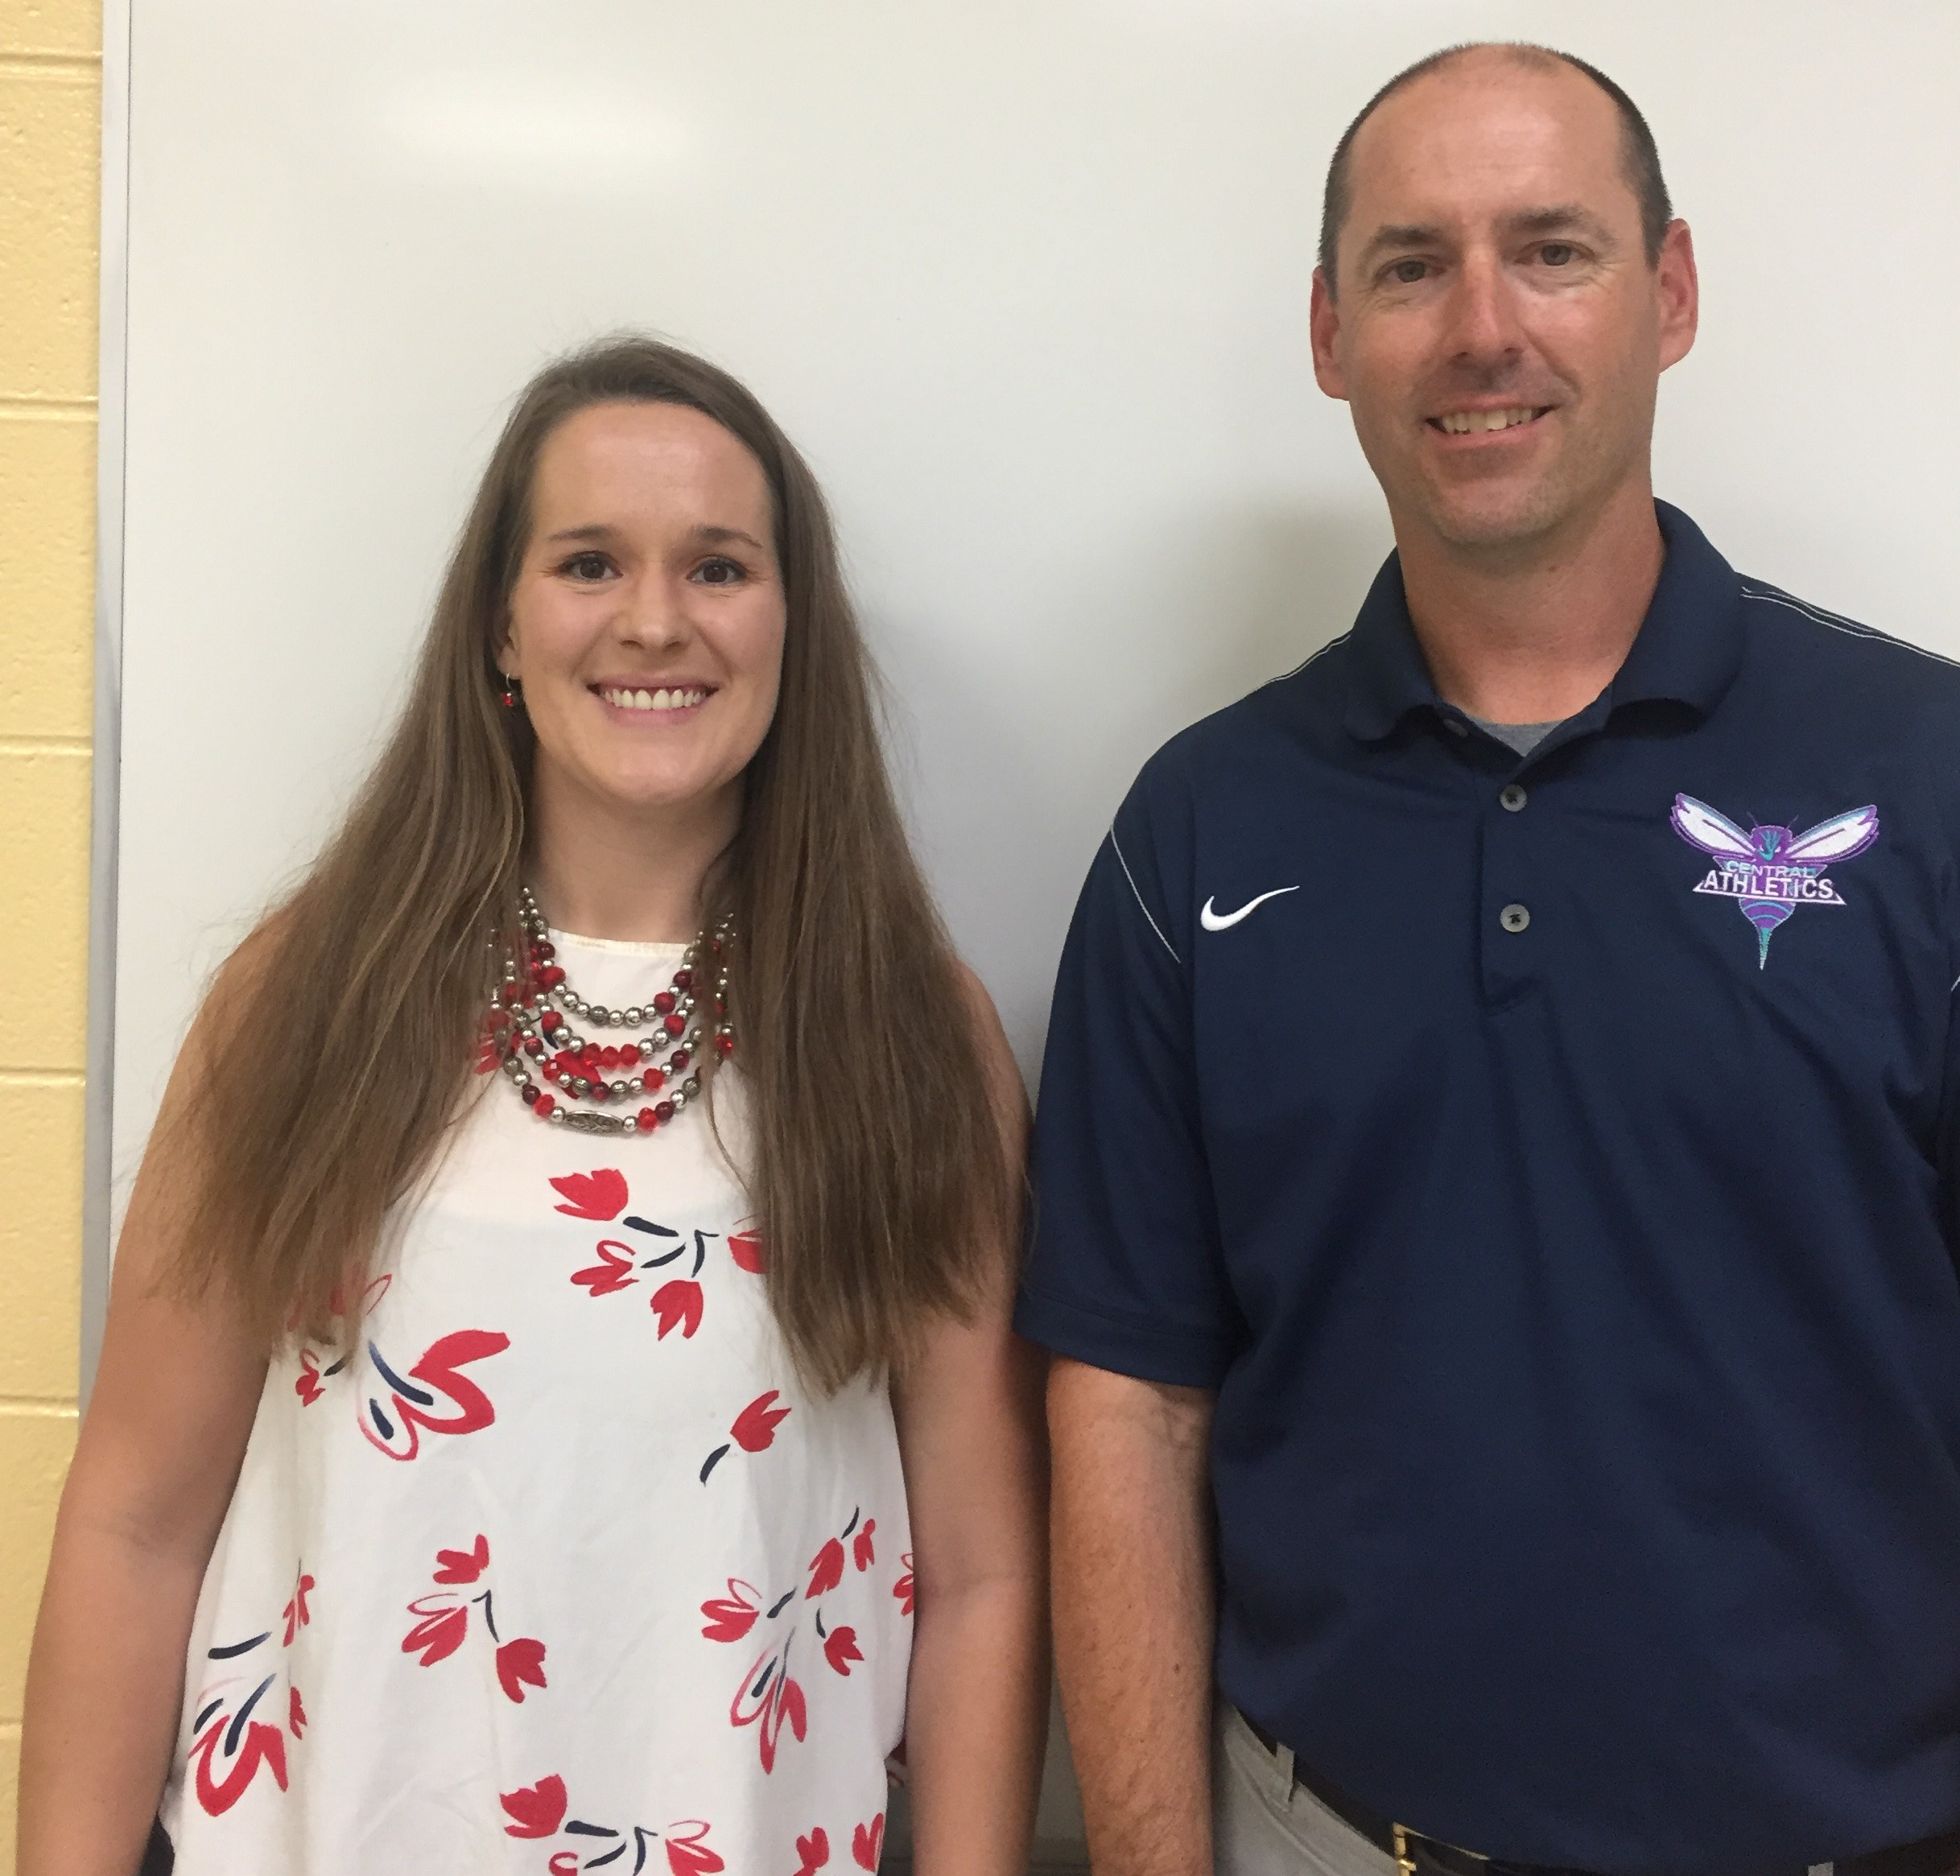 Tips from Teachers - Josh McMillen and Katie McCrary